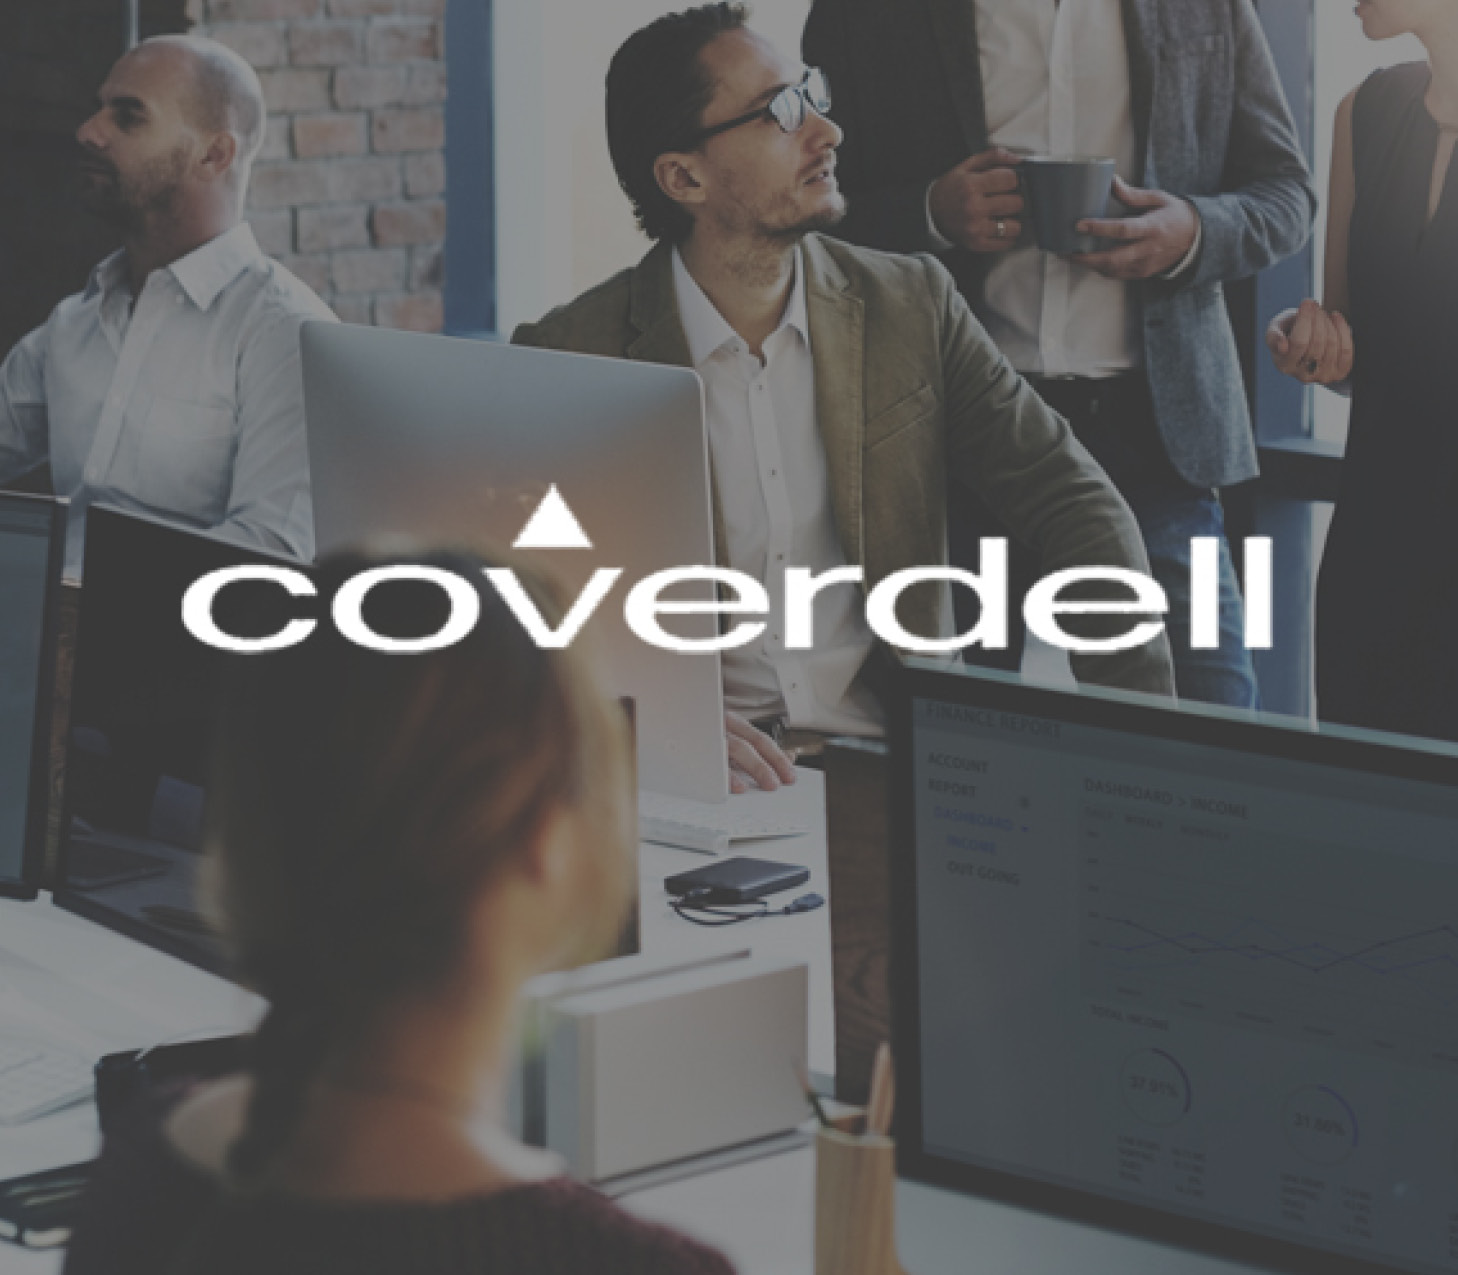 Coverdell Saves Money with Azure